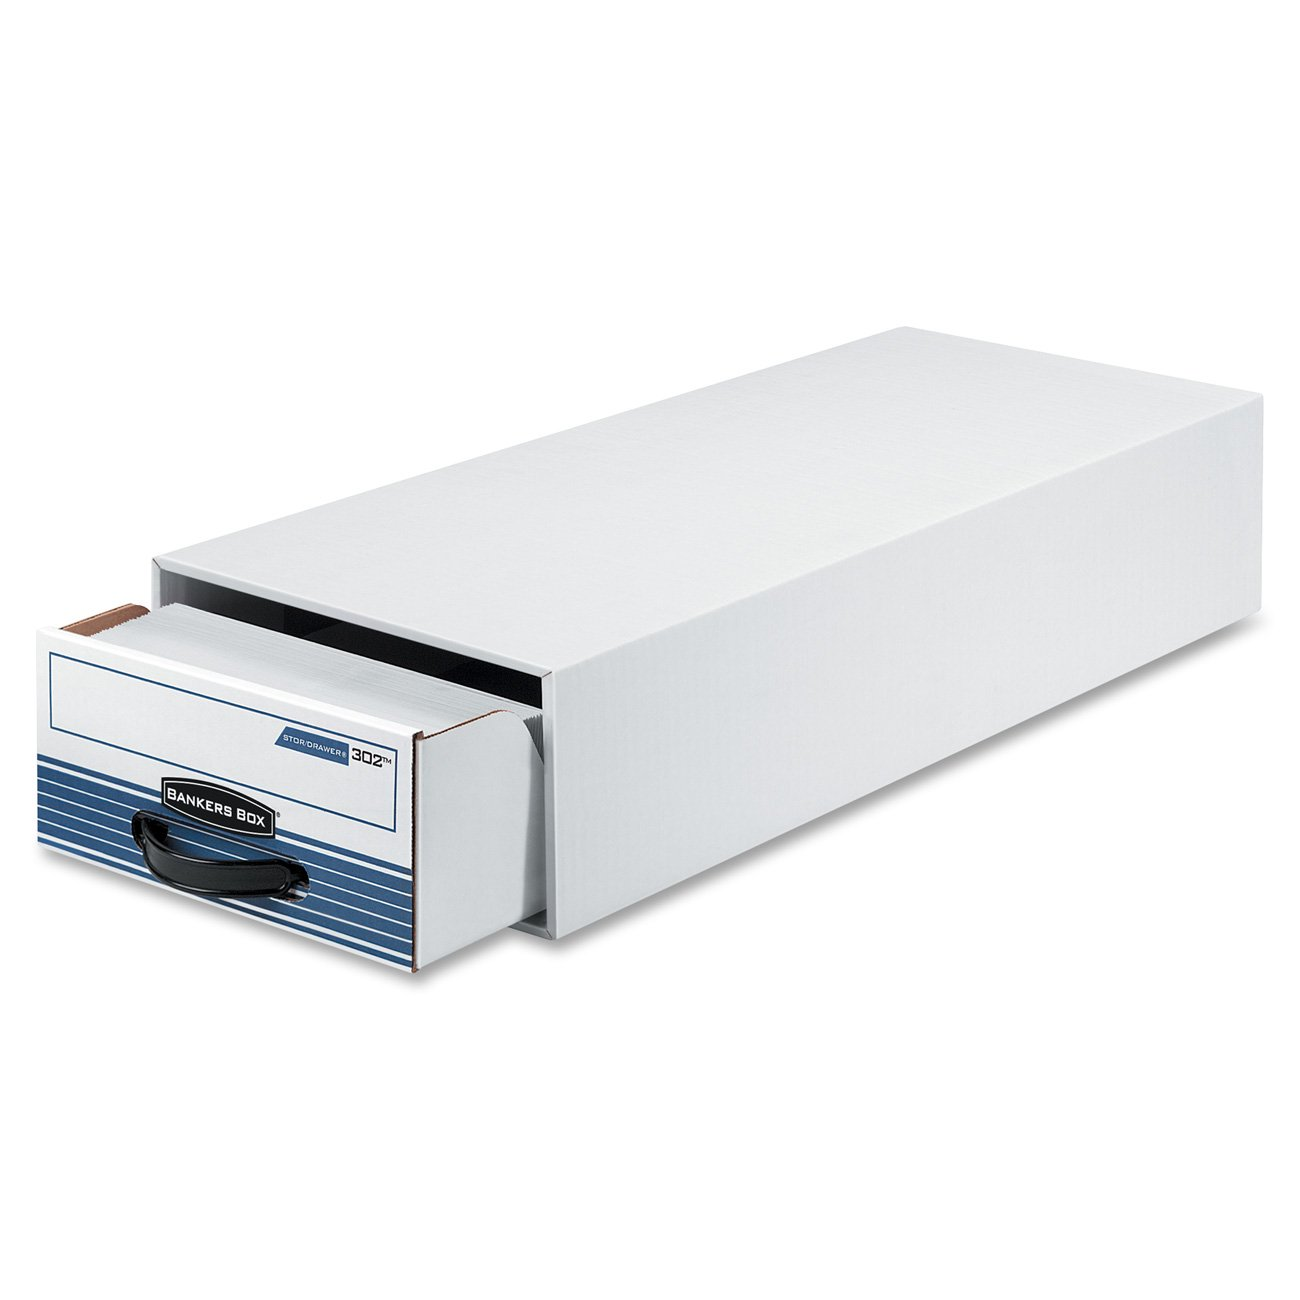 Bankers Box 00302 STOR/DRAWER Steel Plus Storage Box, Check Size, Wire, White/Blue (Case of 12)